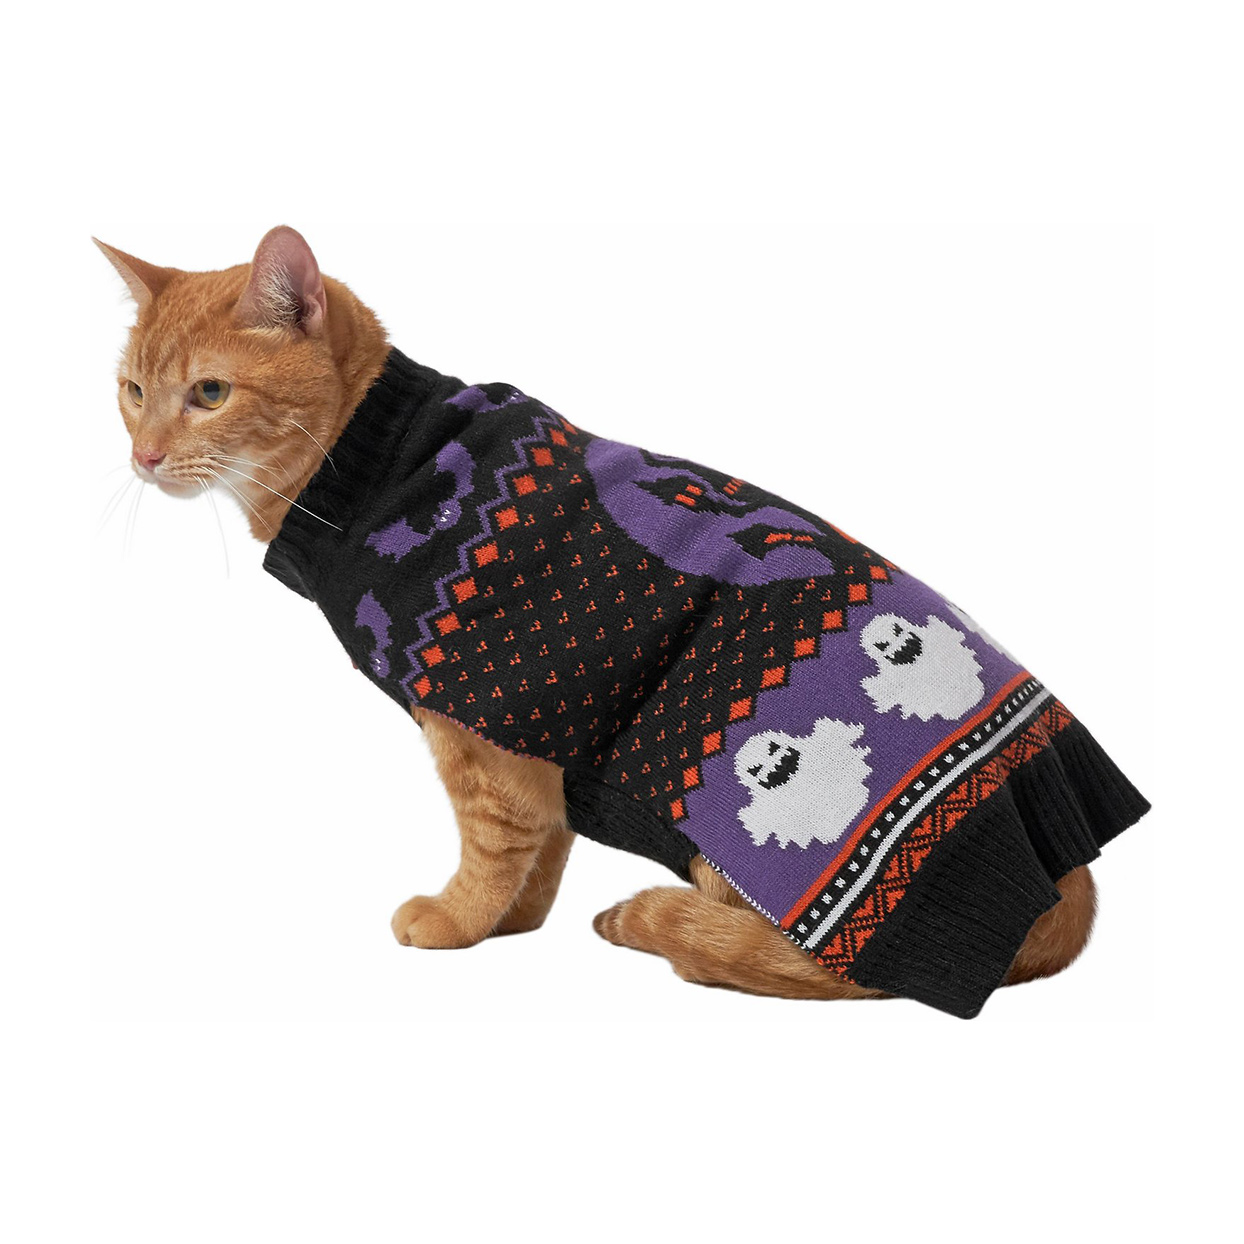 Cat wearing a Frisco Spooky Ghost Dog & Cat Sweater on a white background